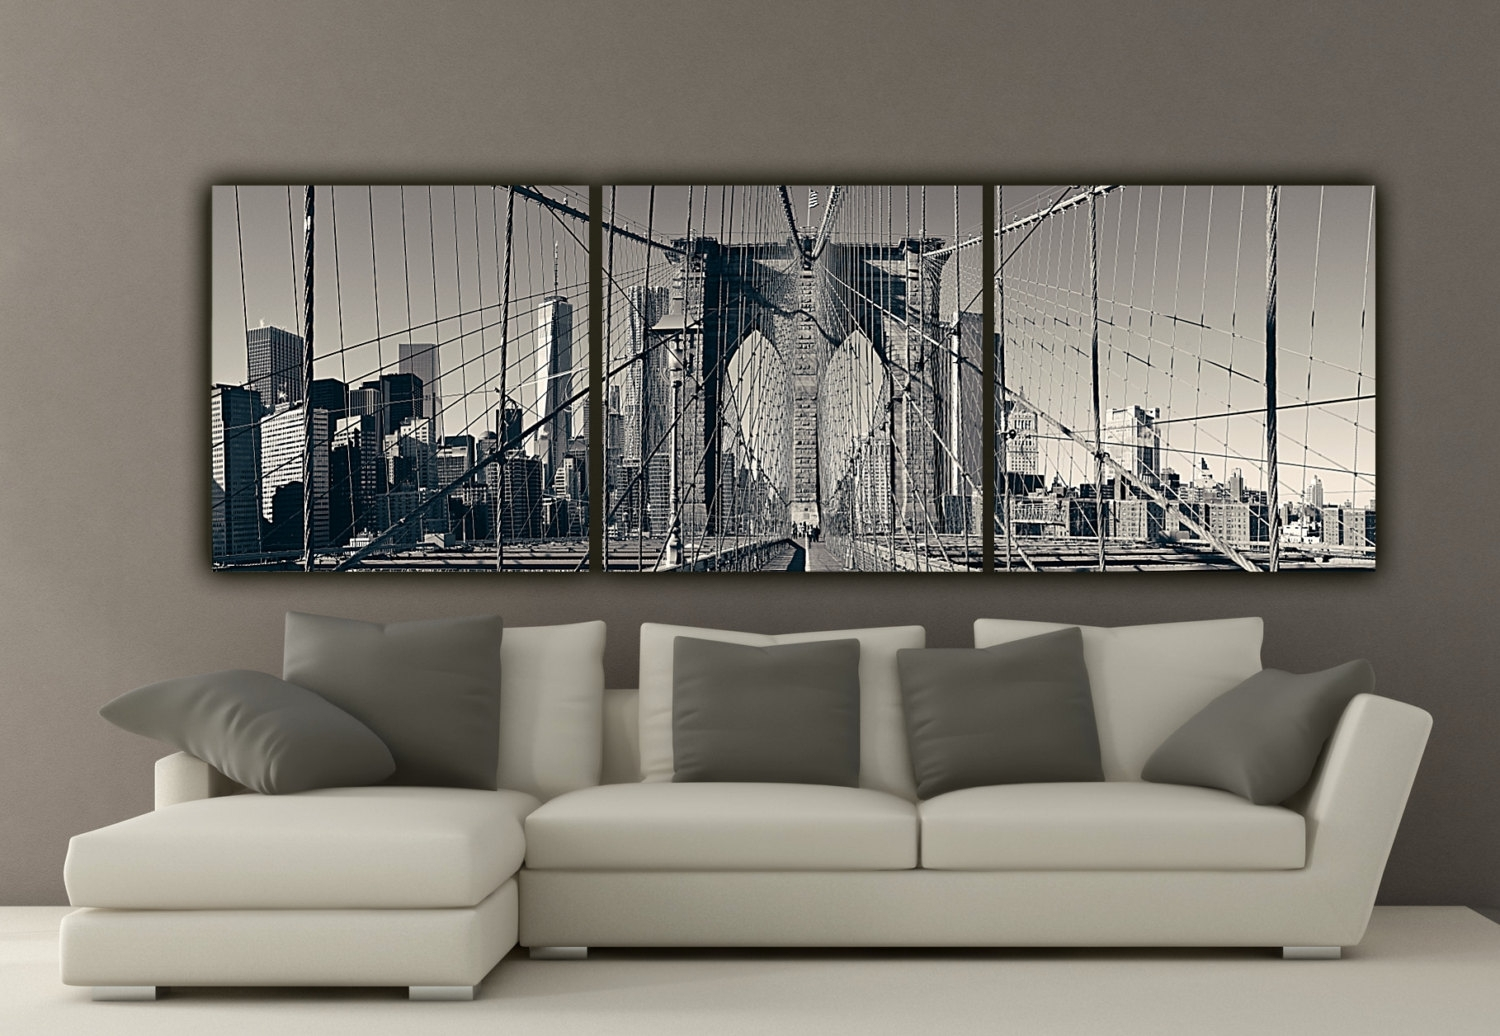 Decor: Surprising Large Canvas Wall Art For Wall Décor Ideas within Current Tile Canvas Wall Art